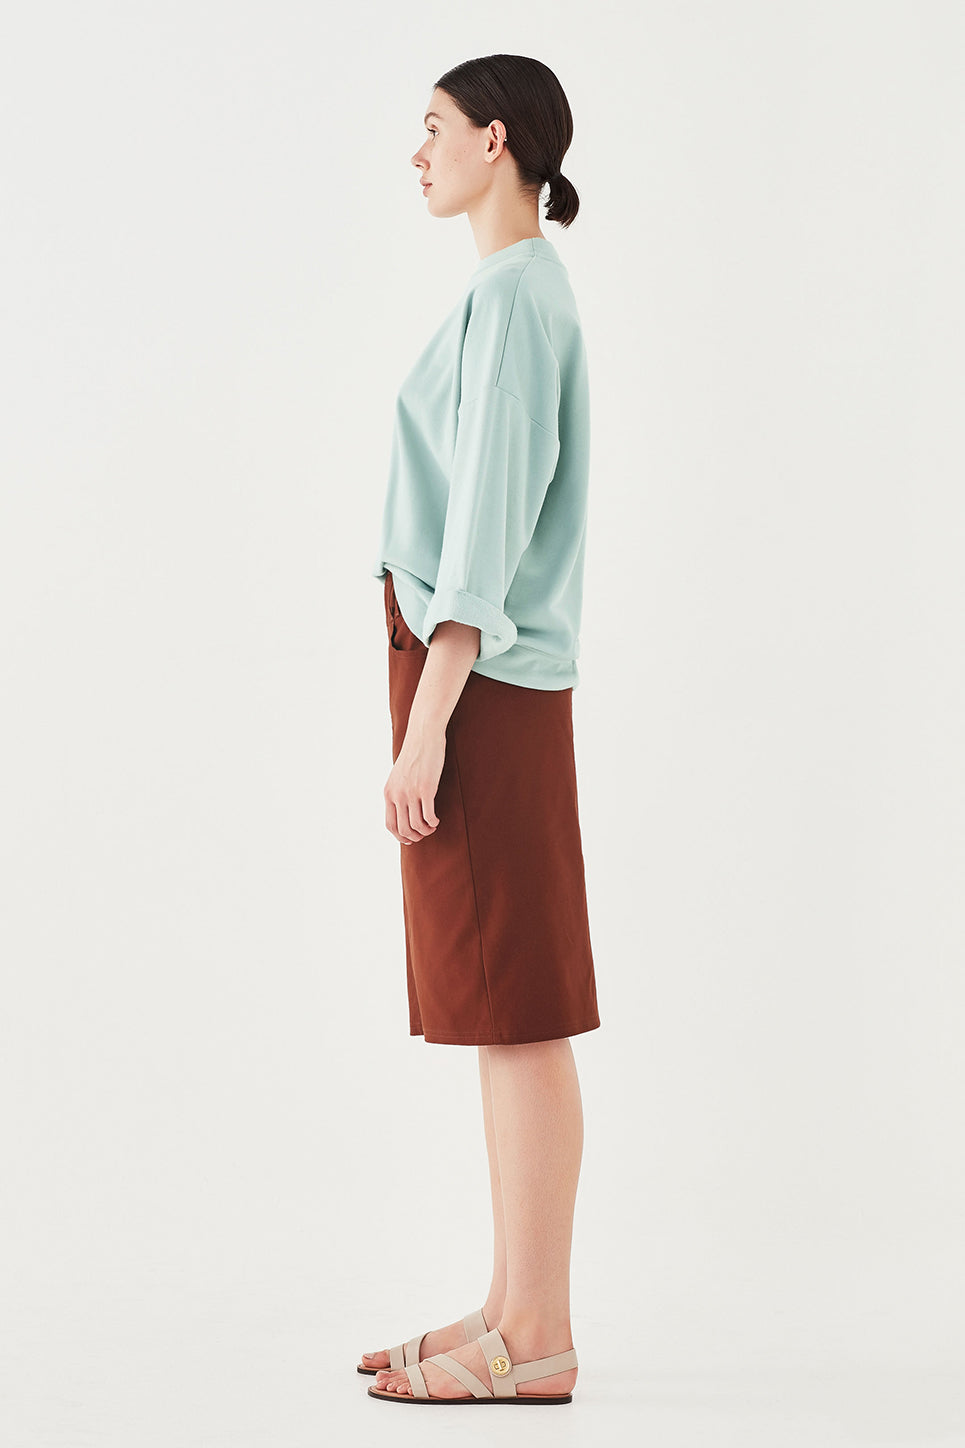 The Fabian Top in Turquoise